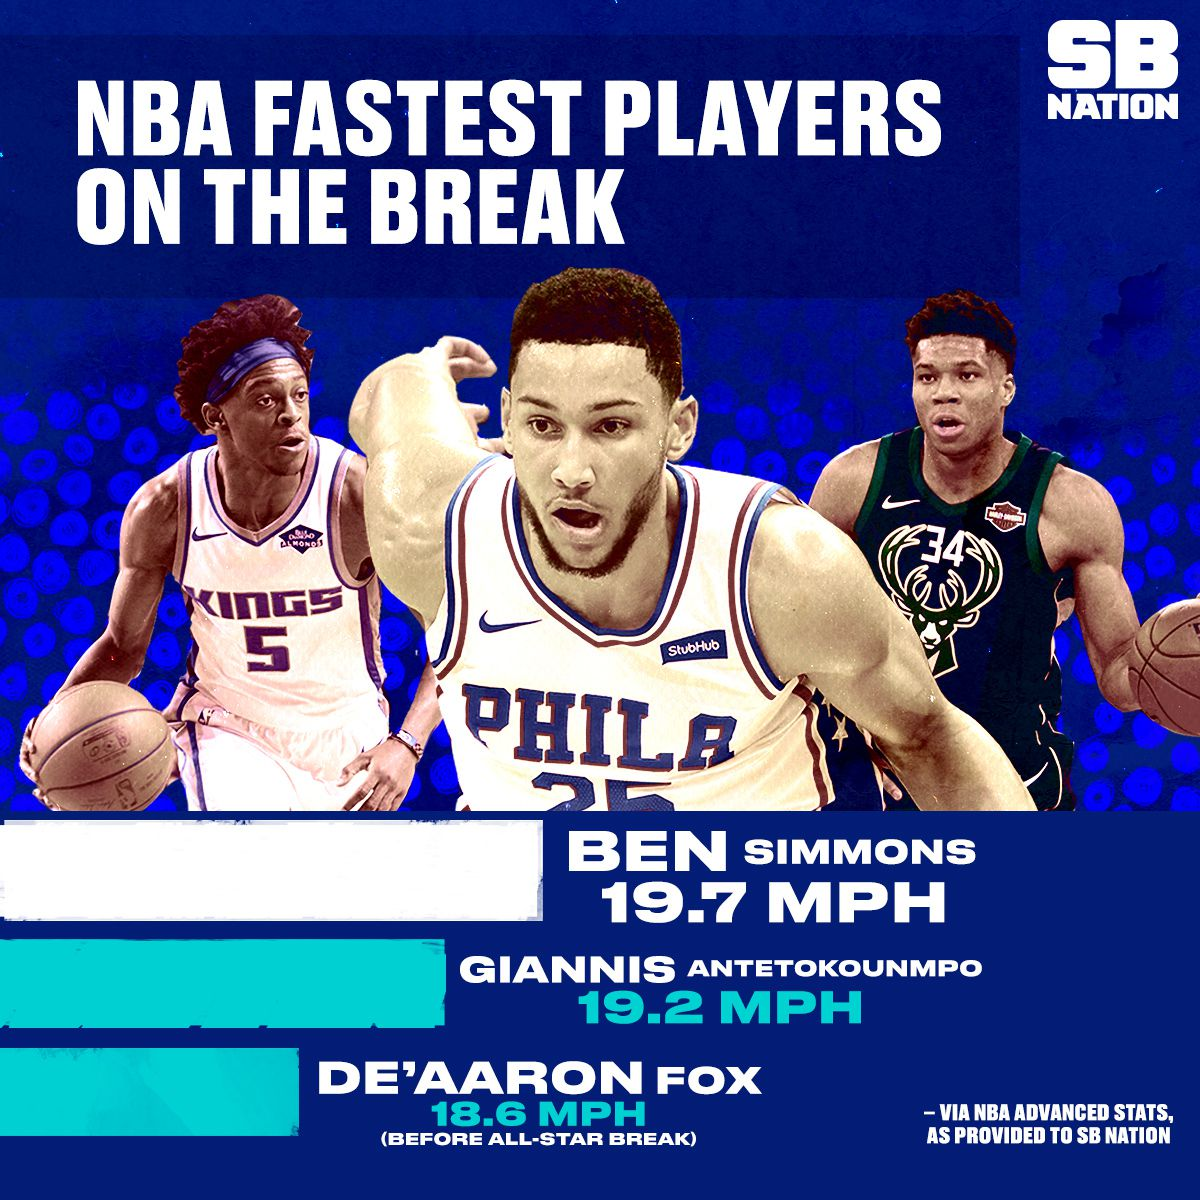 Ben Simmons is so fast, but can speed save him? - SB Nation